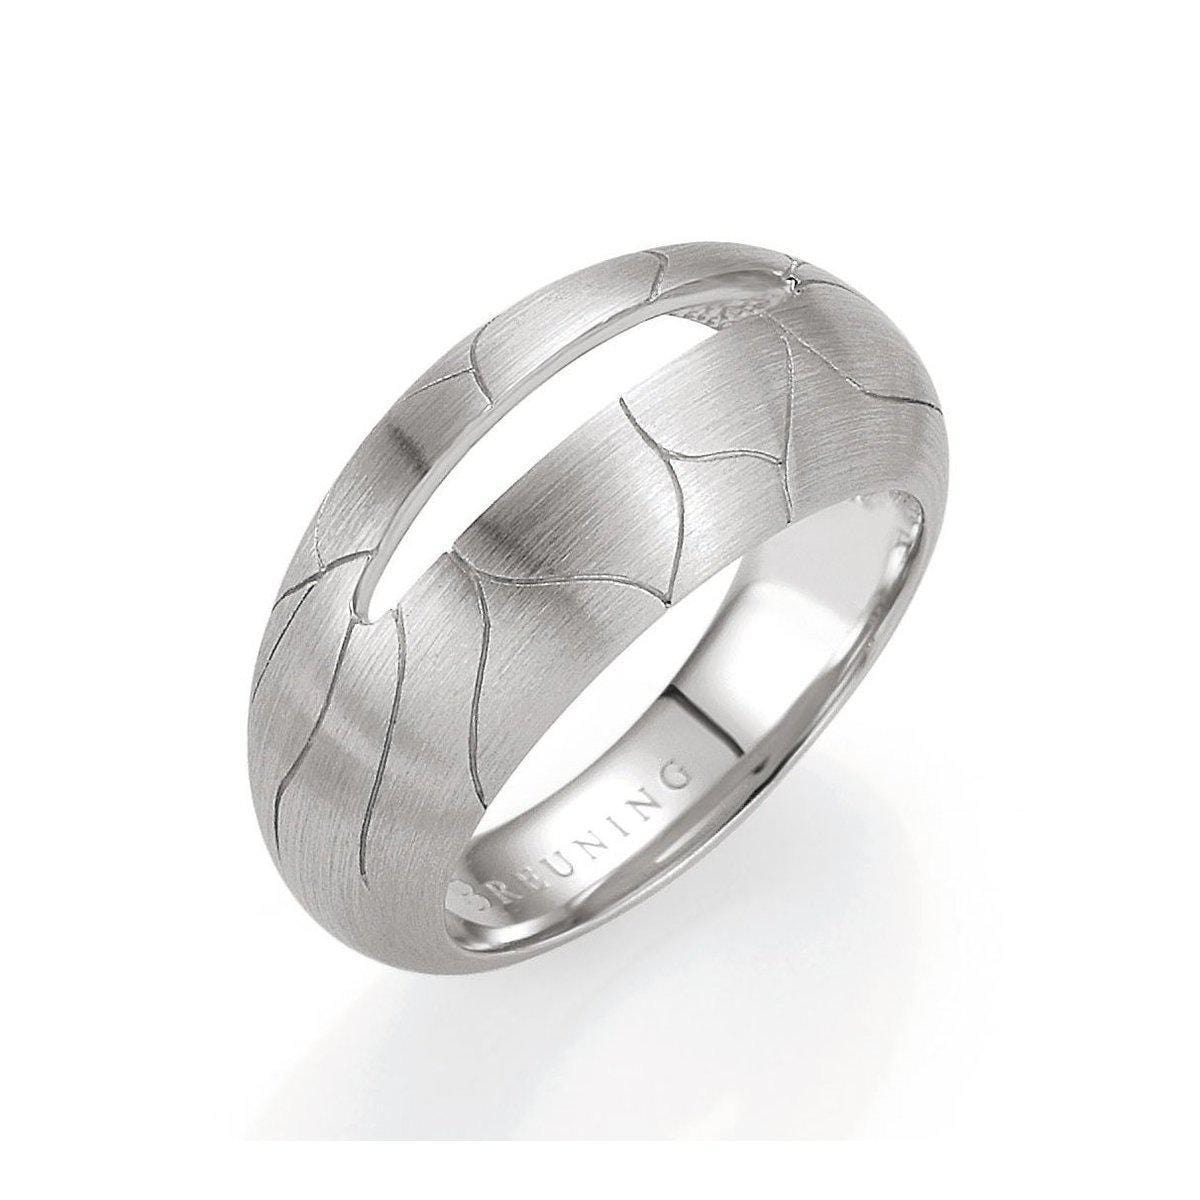 Rhodium Plated Sterling Silver Ring - 44/01395-Breuning-Renee Taylor Gallery